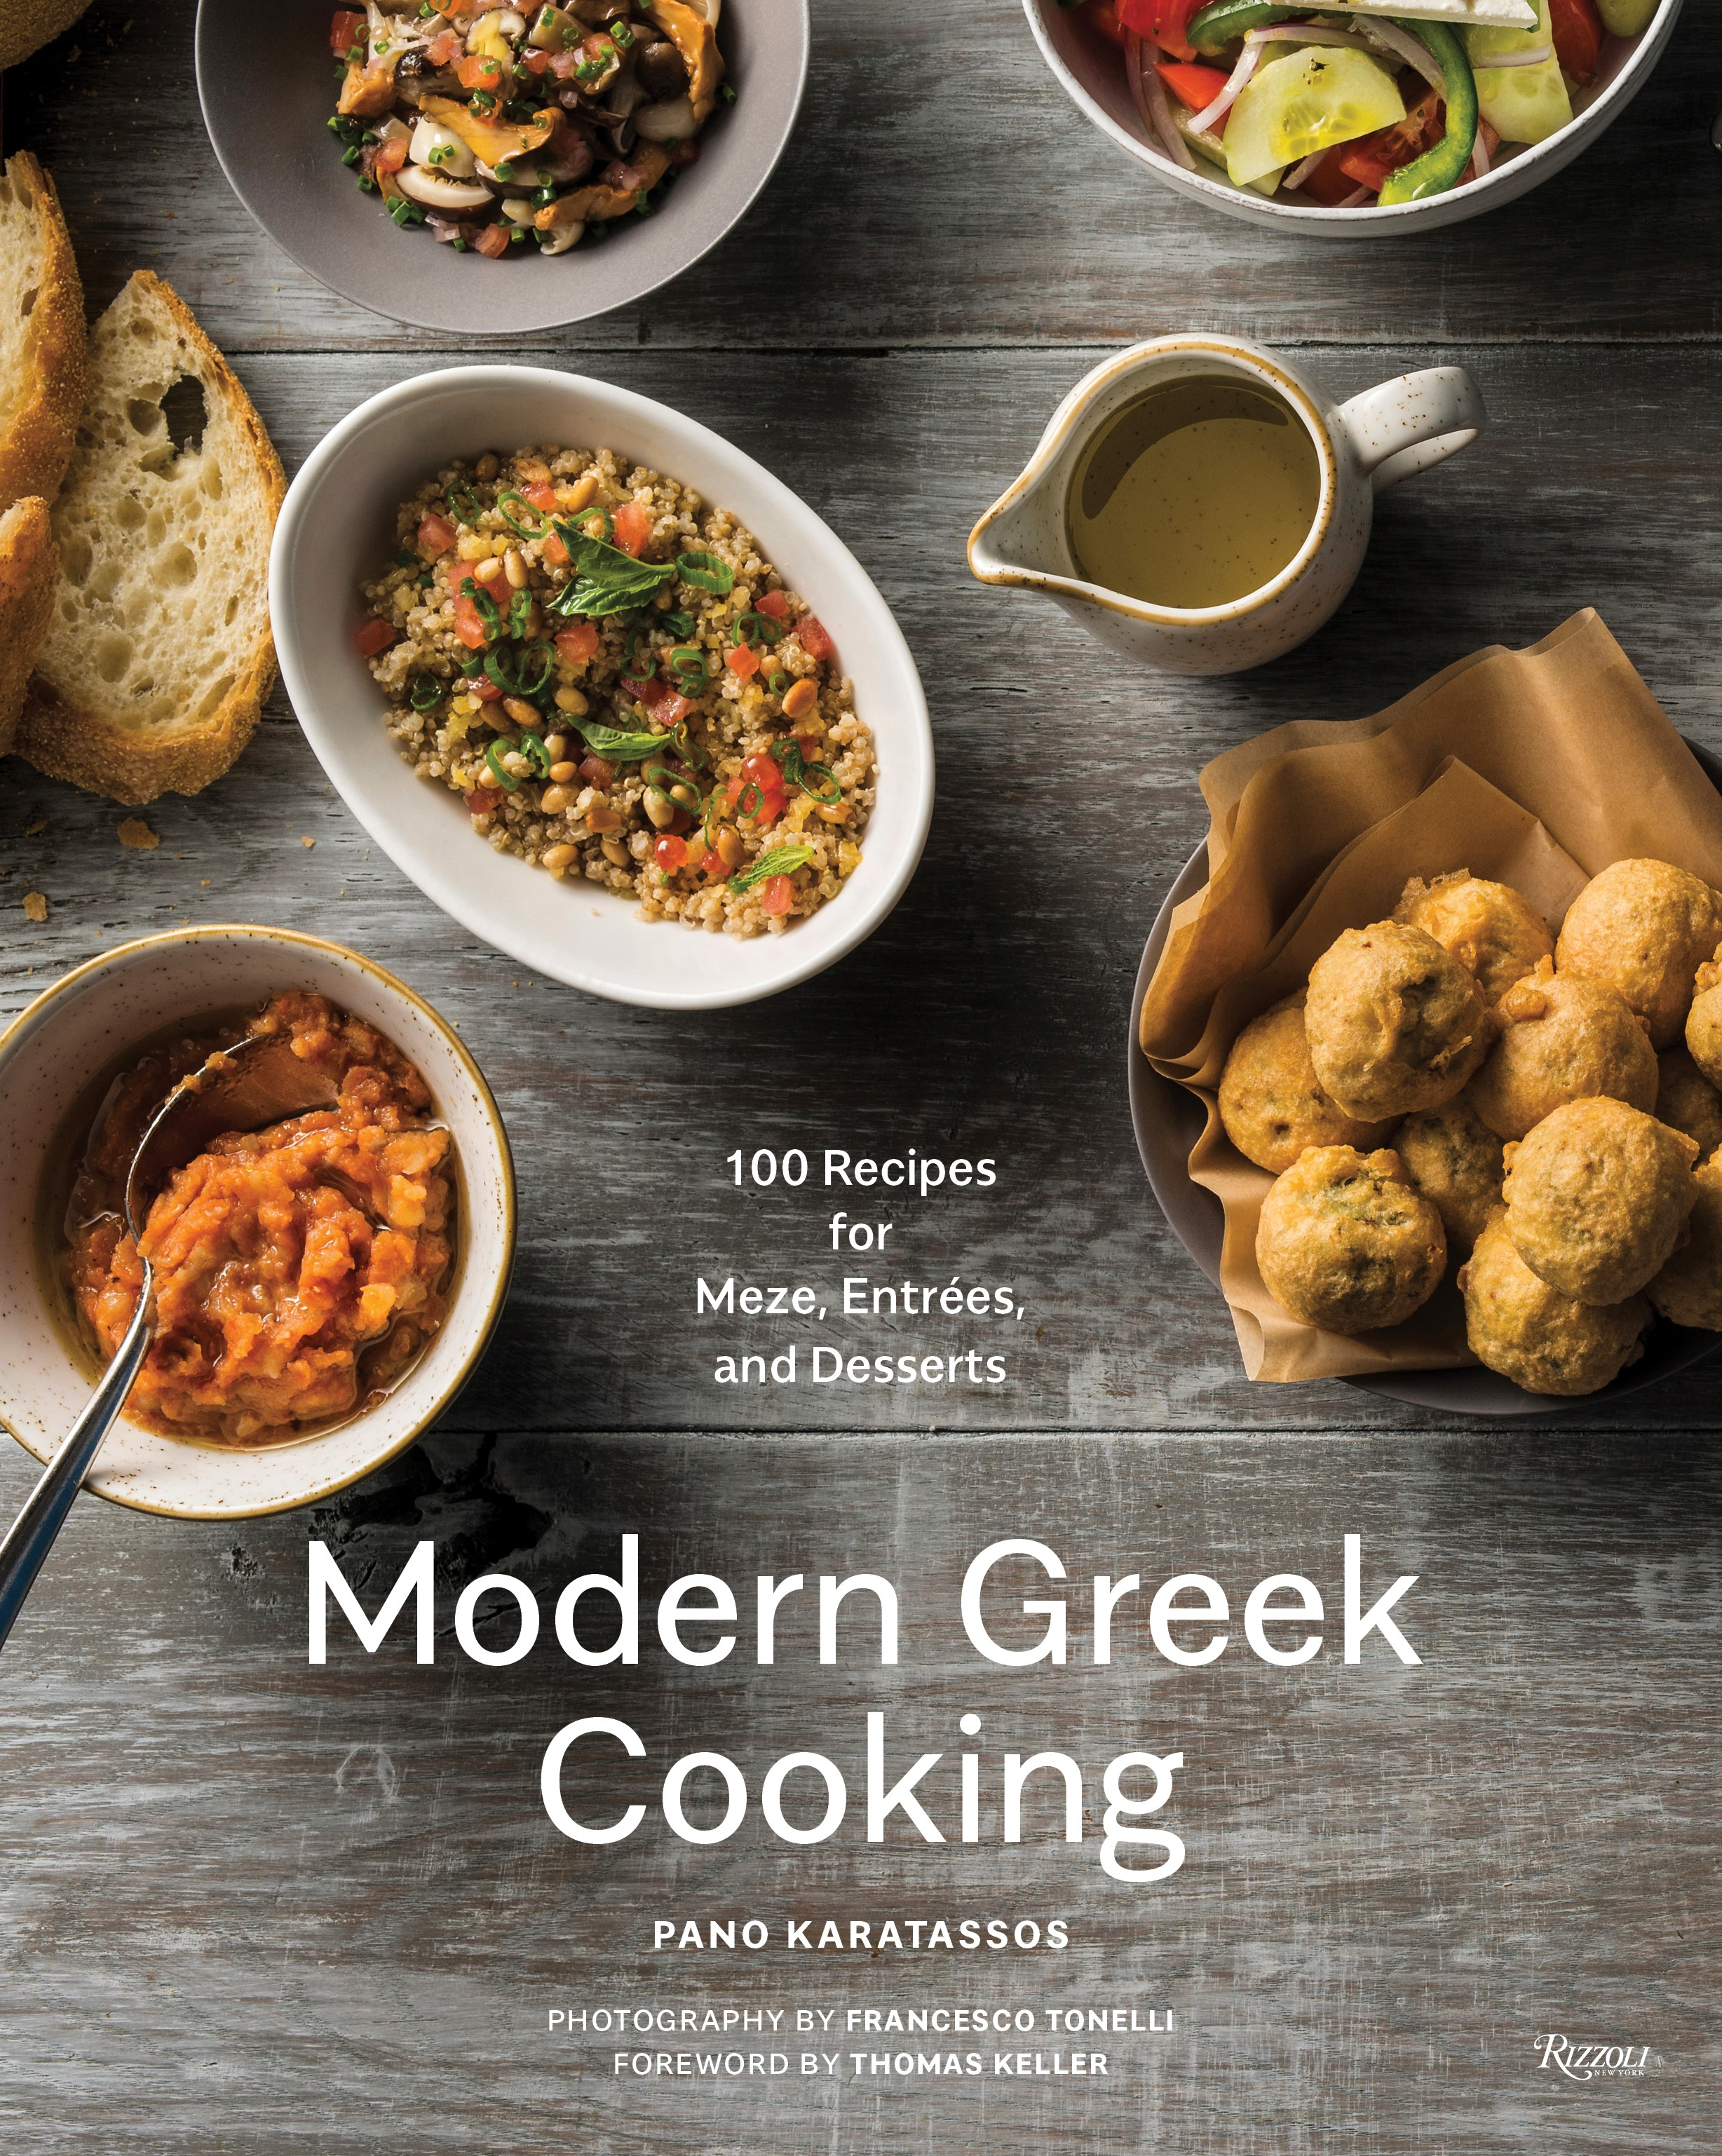 Cook the Book: Modern Greek Cooking with Chef Pano Karatassos